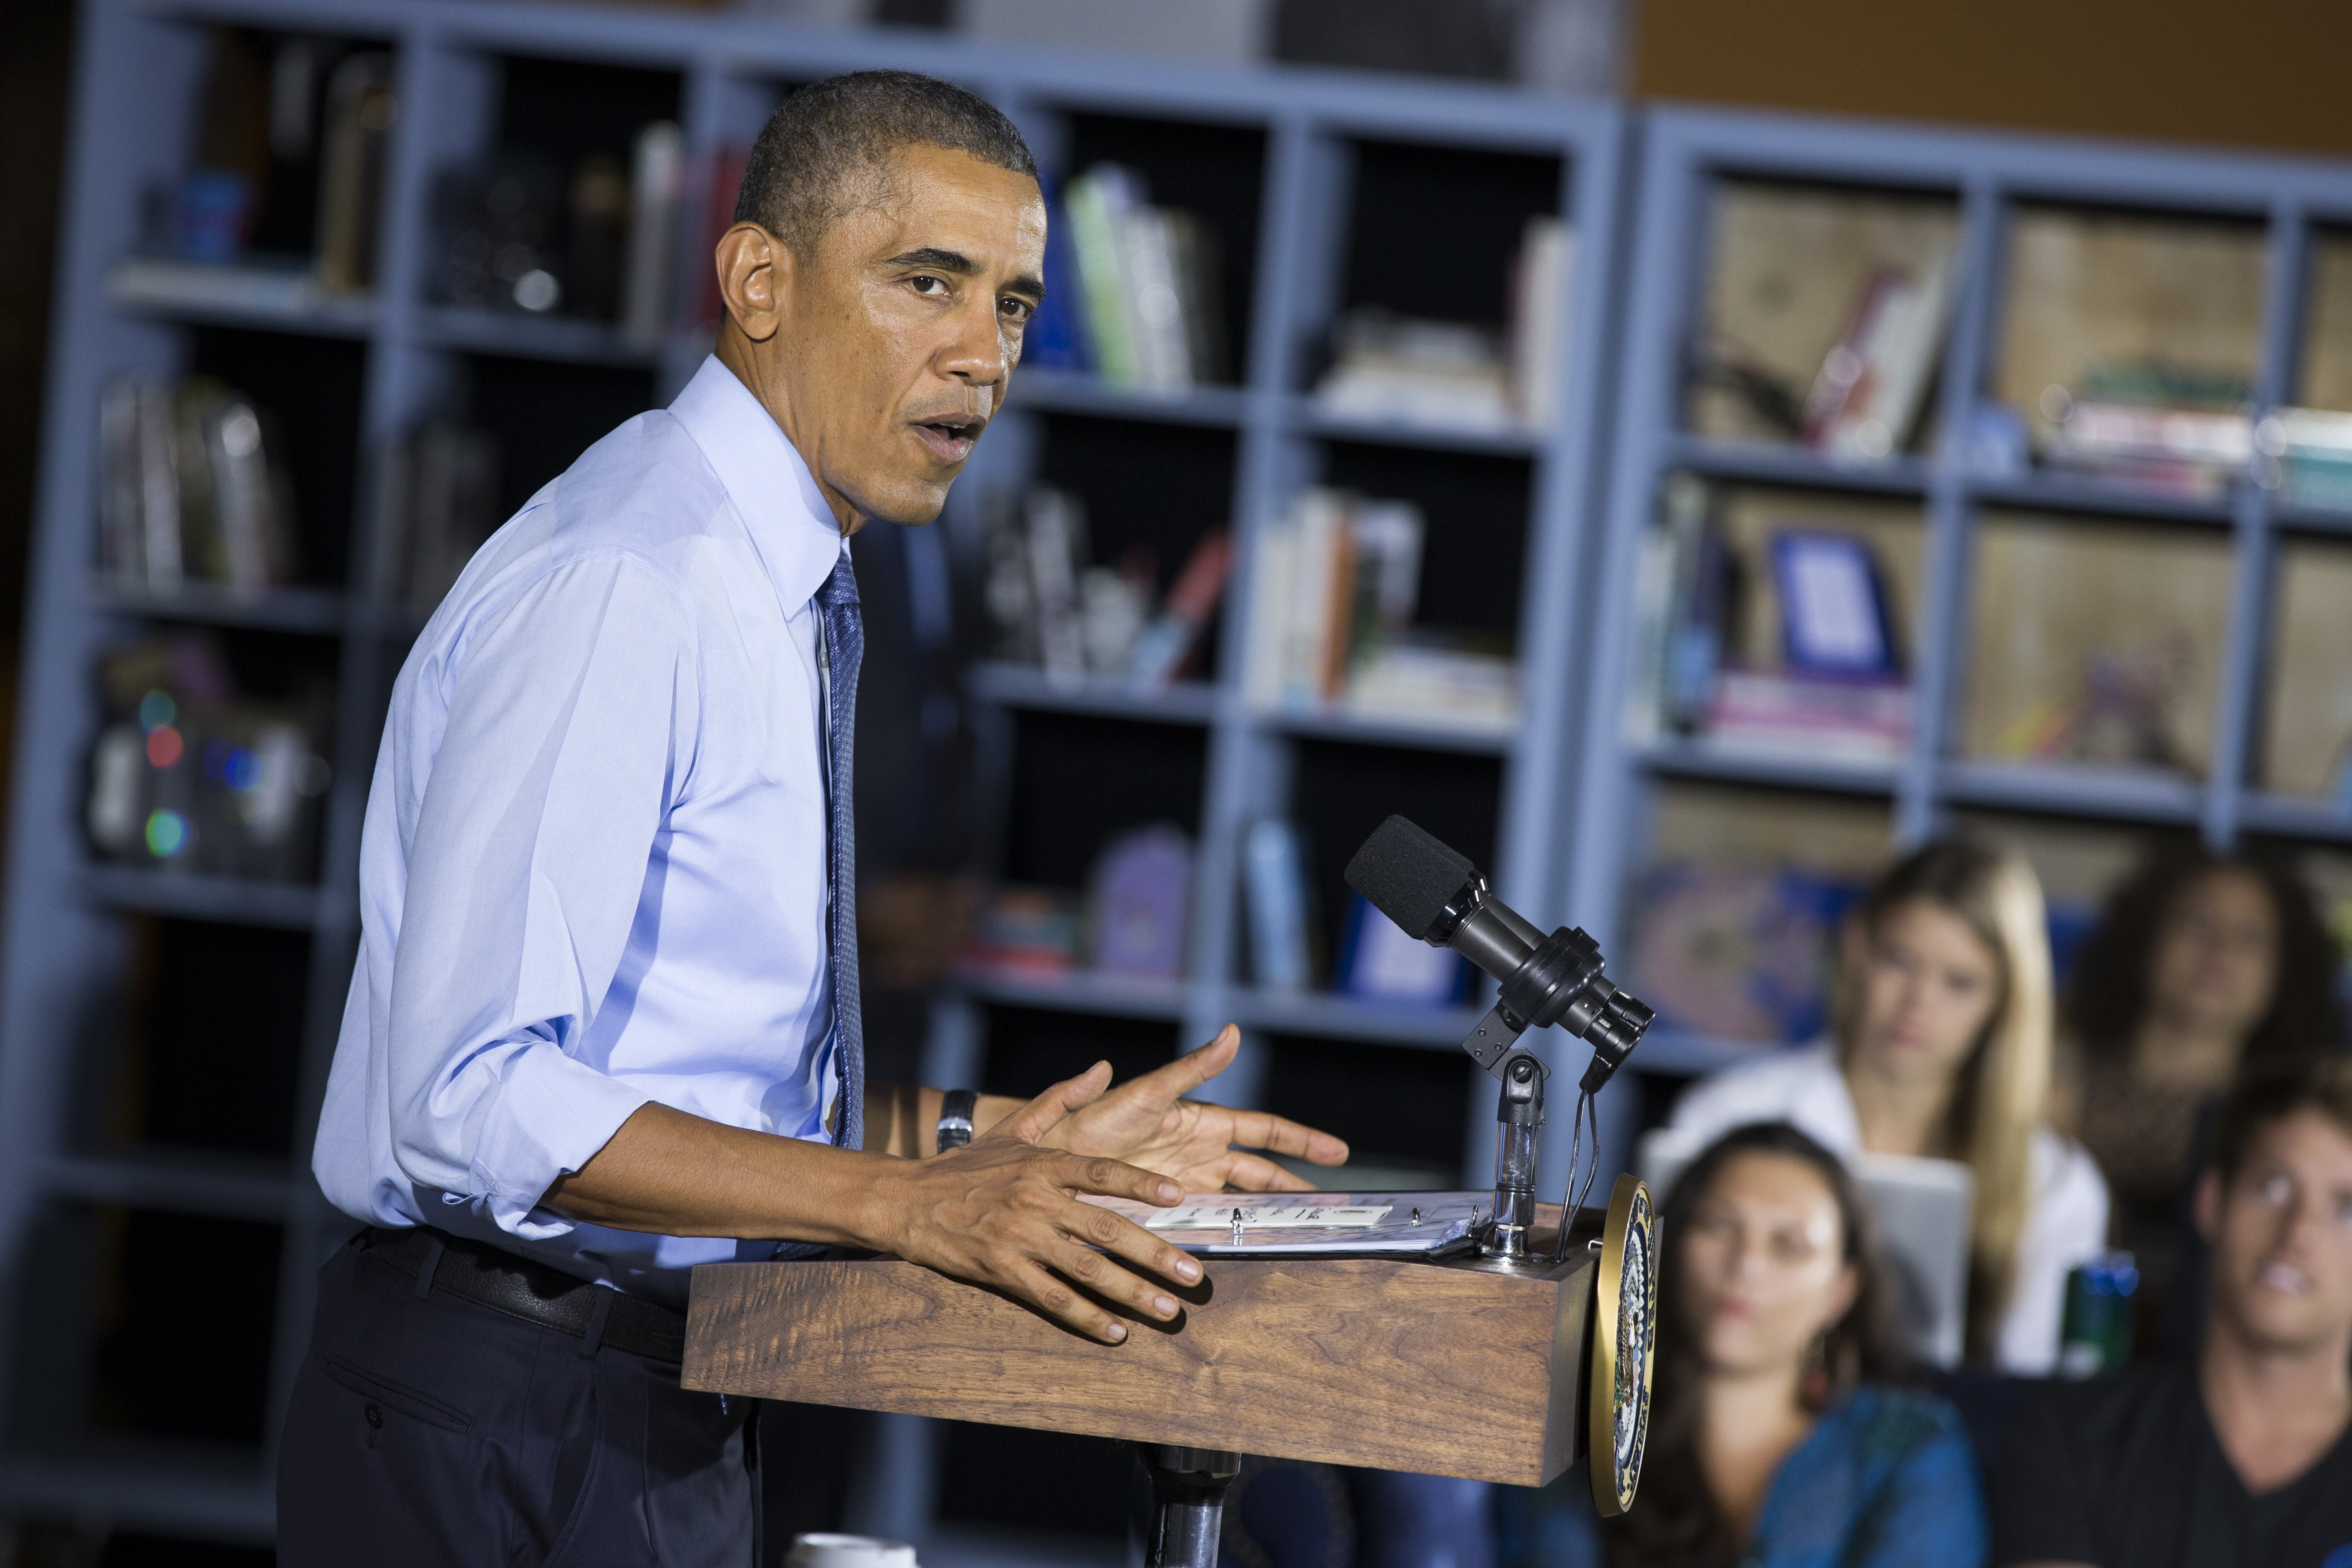 President Barack Obama speaks during an event at Cross Campus, on Thursday, Oct. 9, 2014, in Santa Monica, Calif.